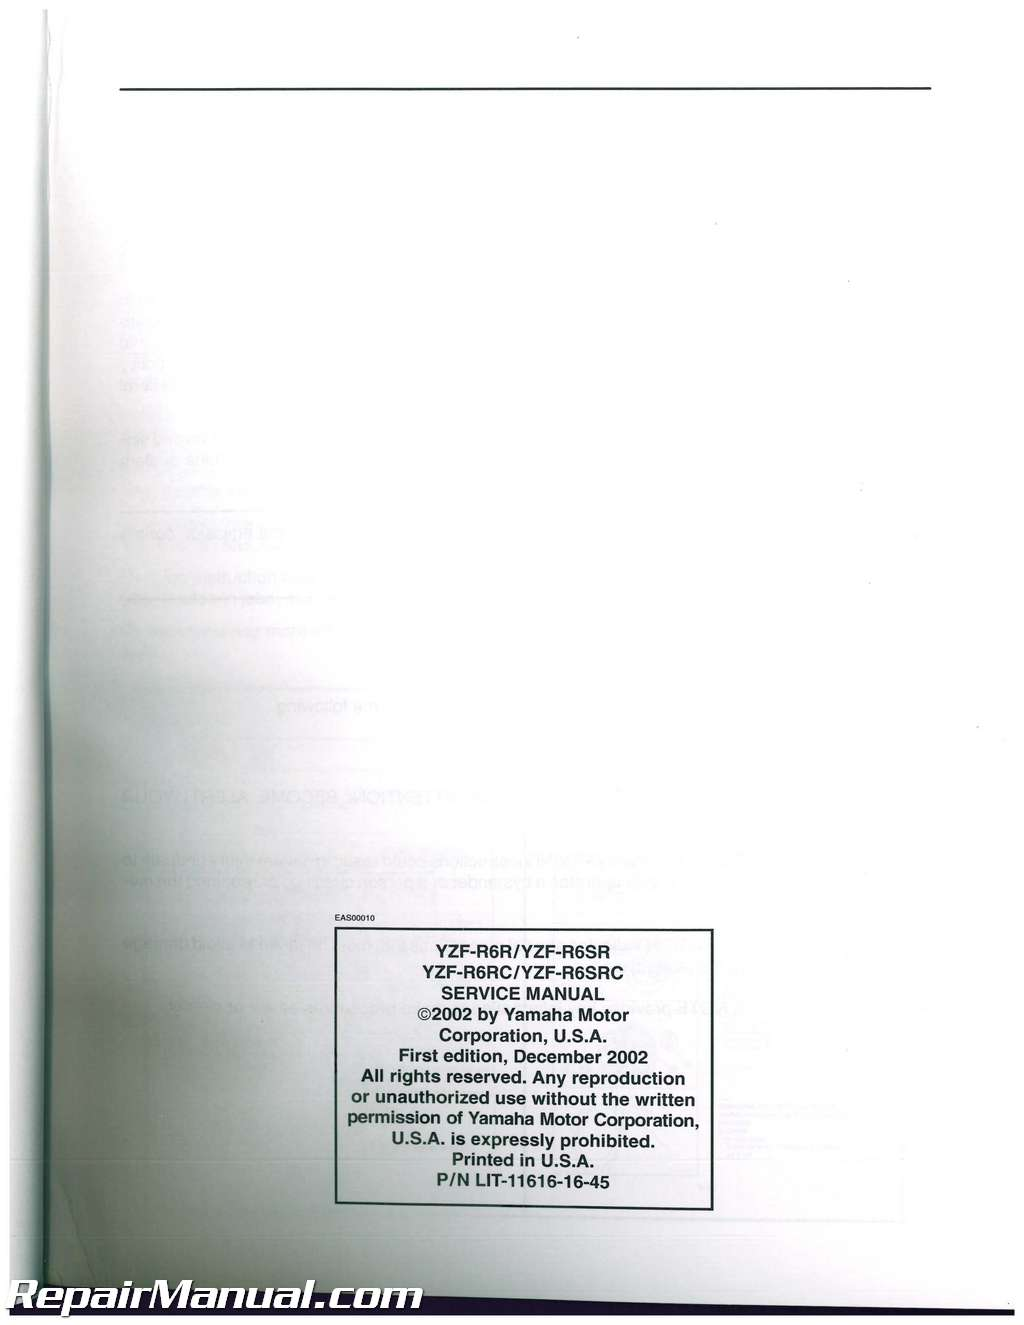 2003-2005 Yamaha YZF-R6 and 2006-2009 YZF-R6S Service Manual